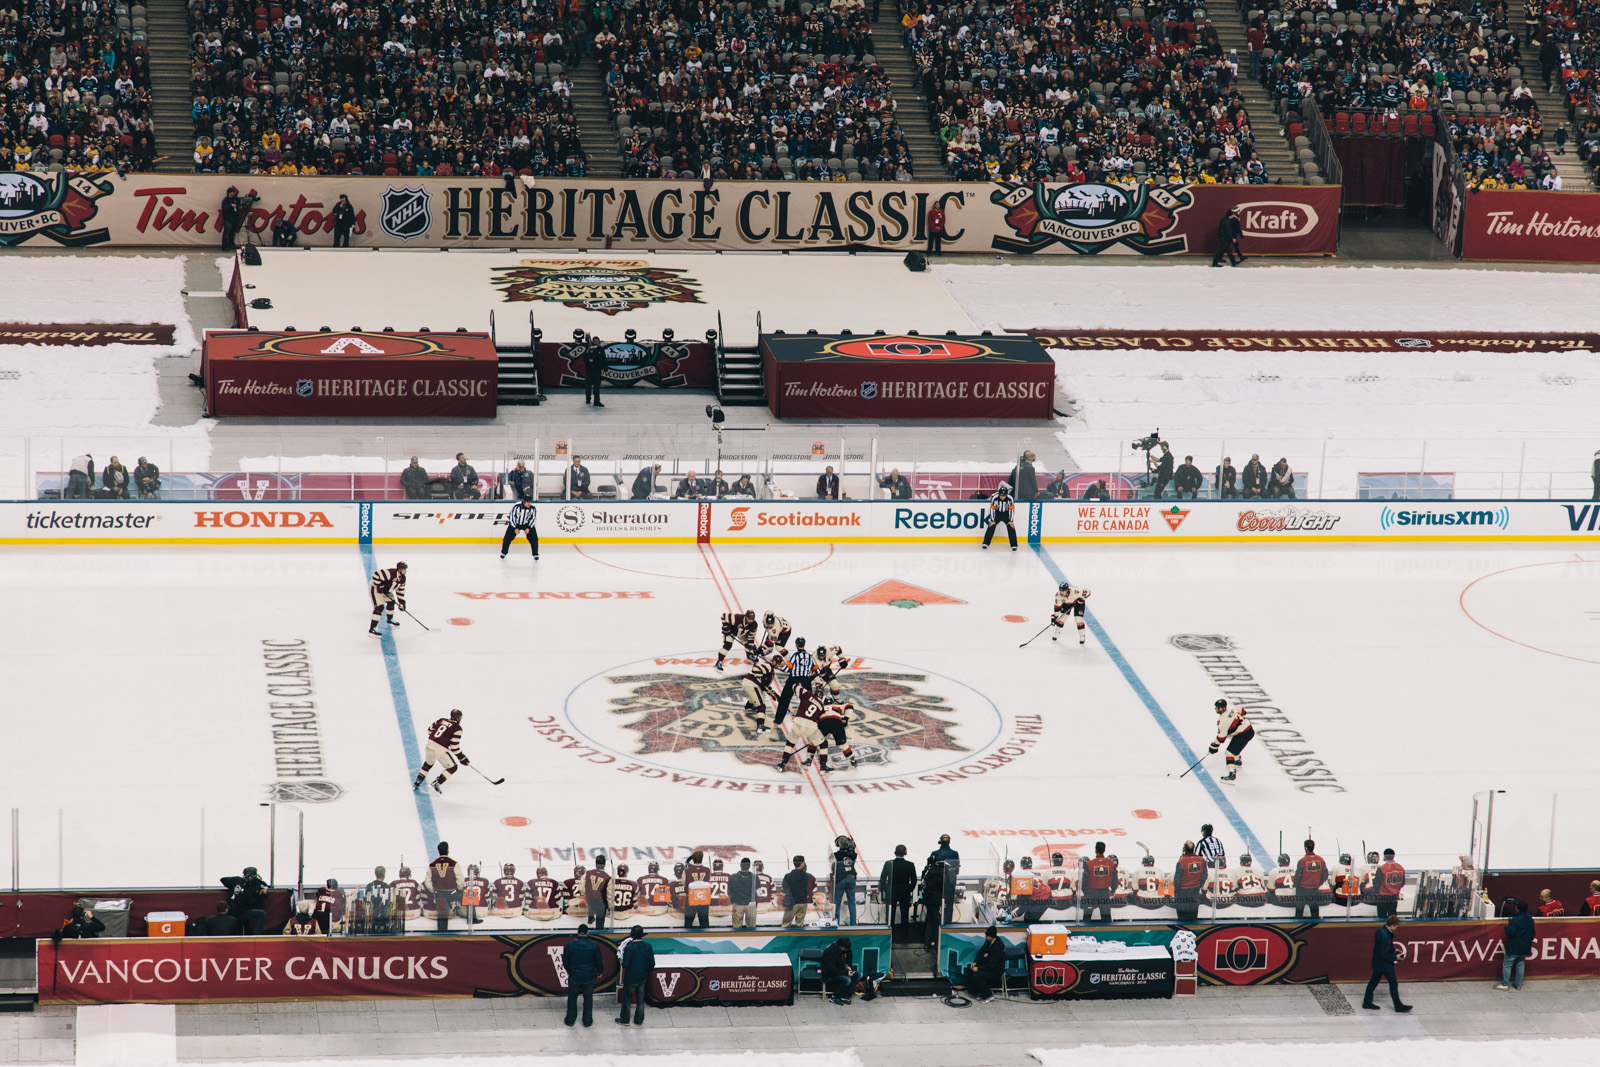 heritage-classic-vancouver-canucks-bc-place-faceoff